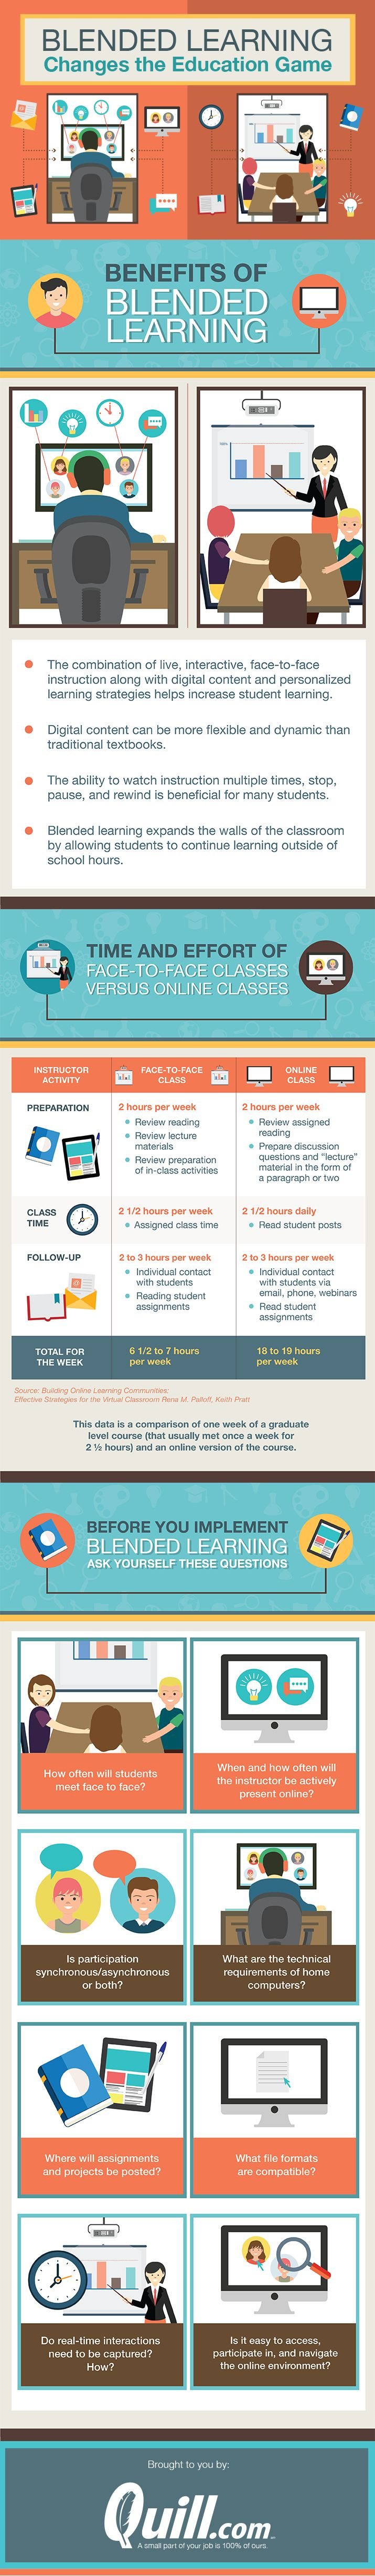 6 Common Misconceptions About Blended Learning Infographic - http://elearninginfographics.com/blended-learning-misconceptions-infographic/